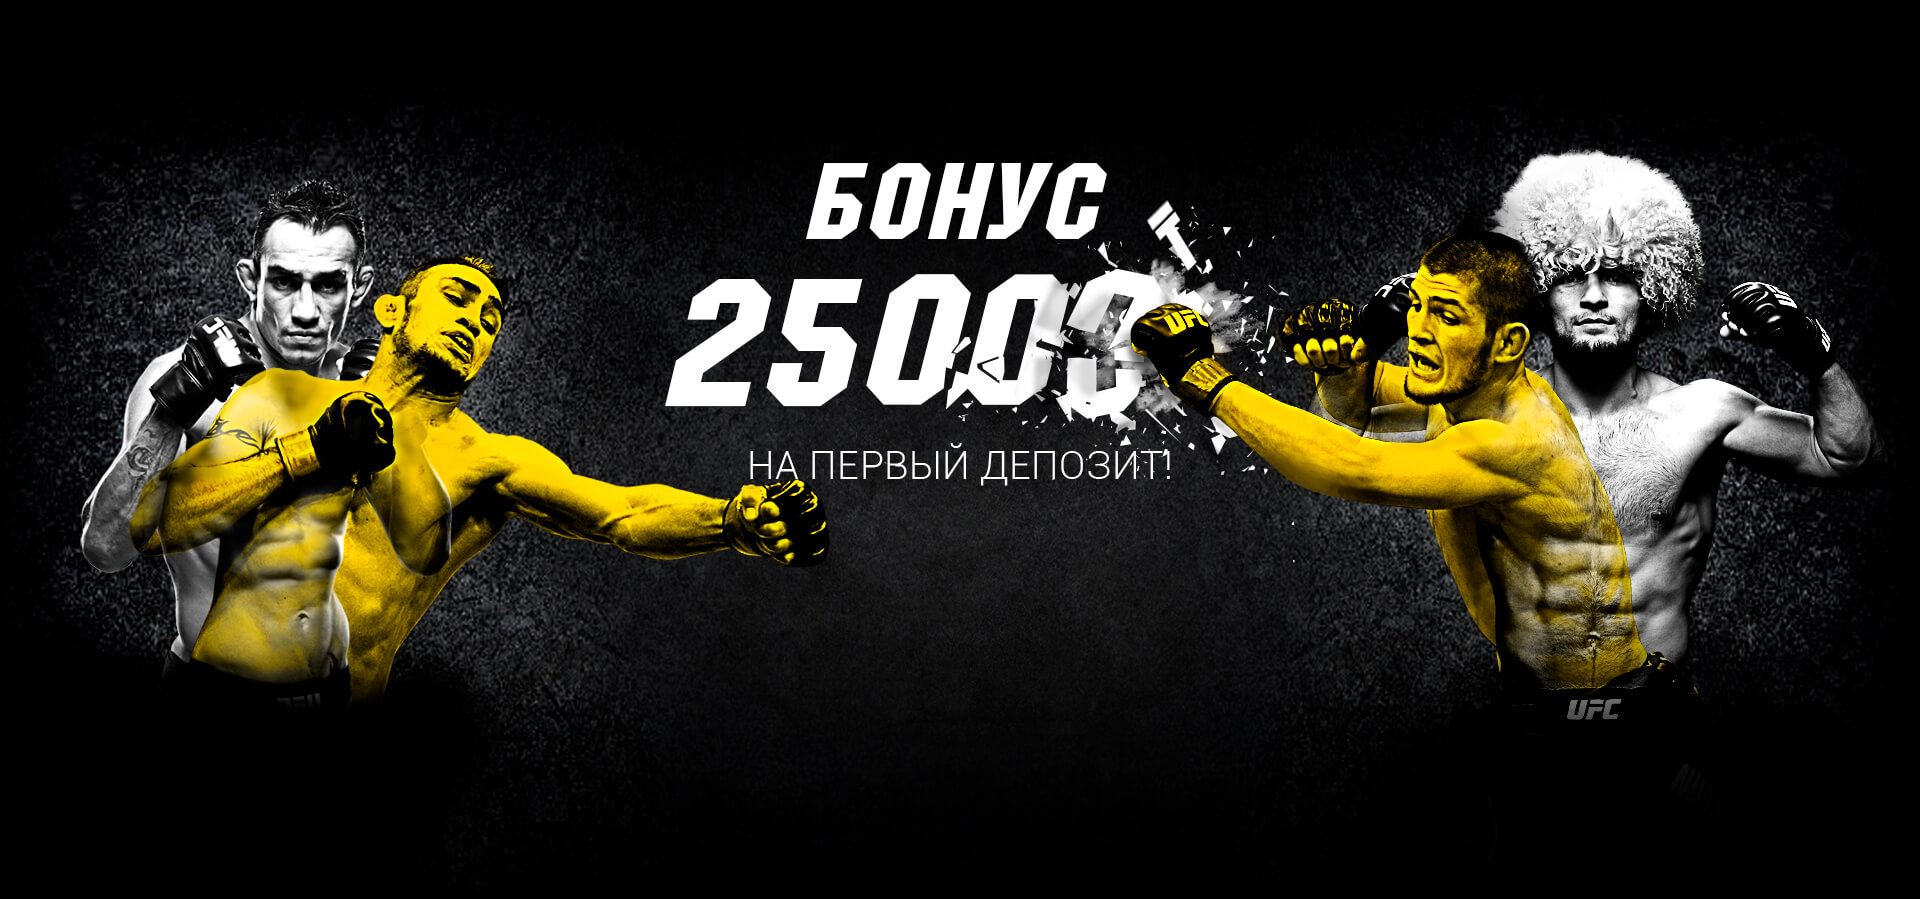 parimatch bonus kz 25000 тысяч тэнге